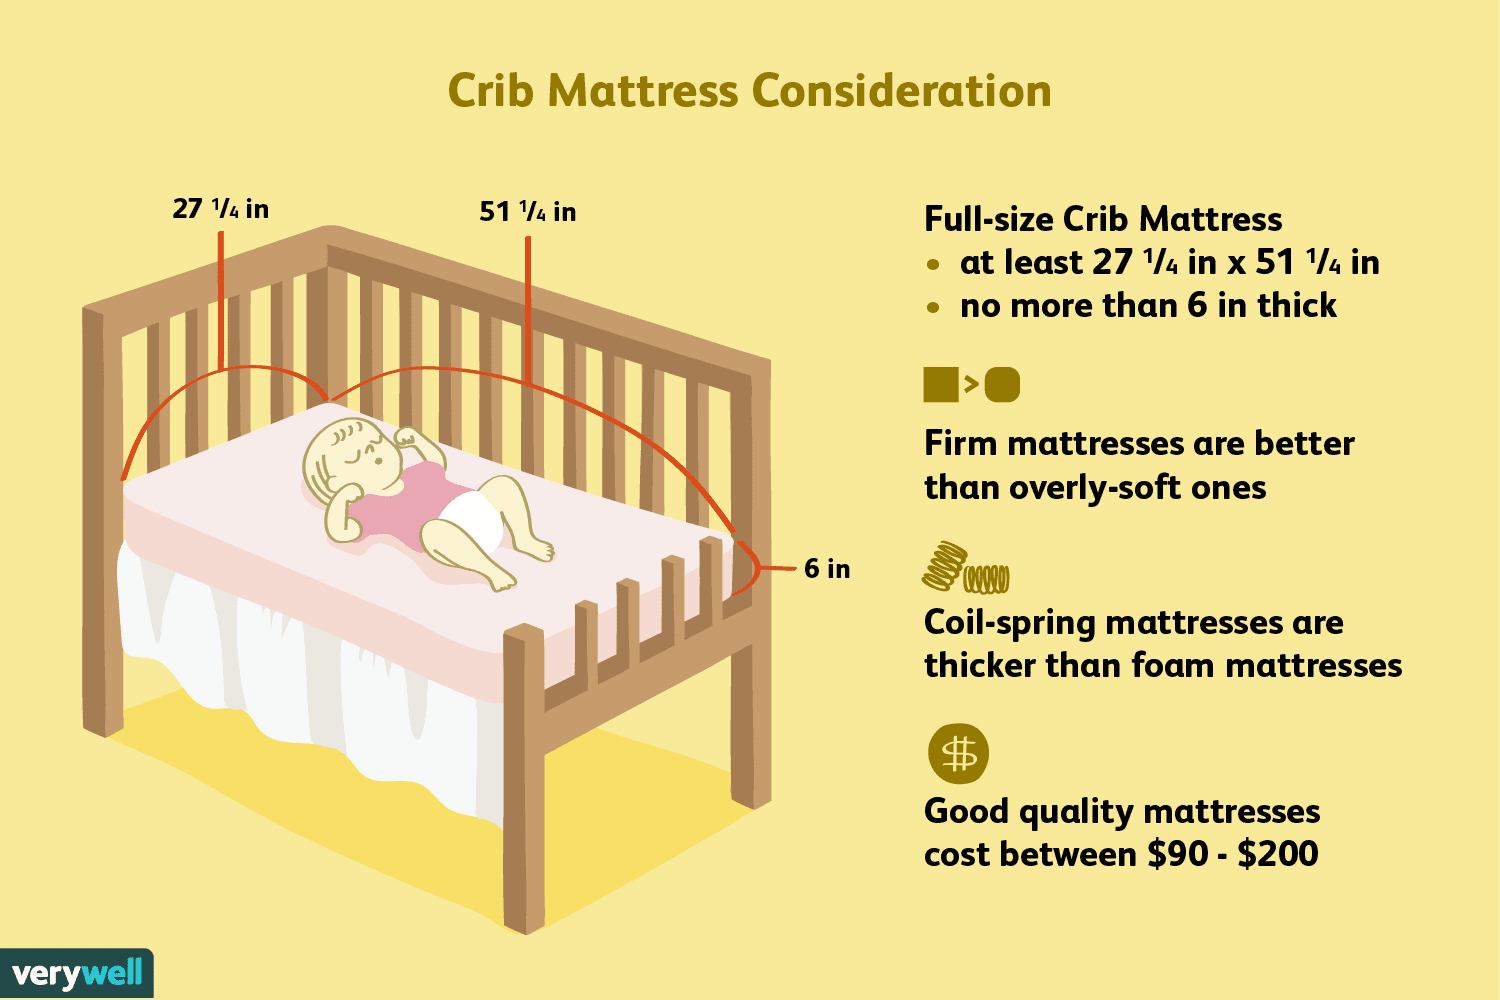 A Parent's Guide to Buying the Right Crib Mattress